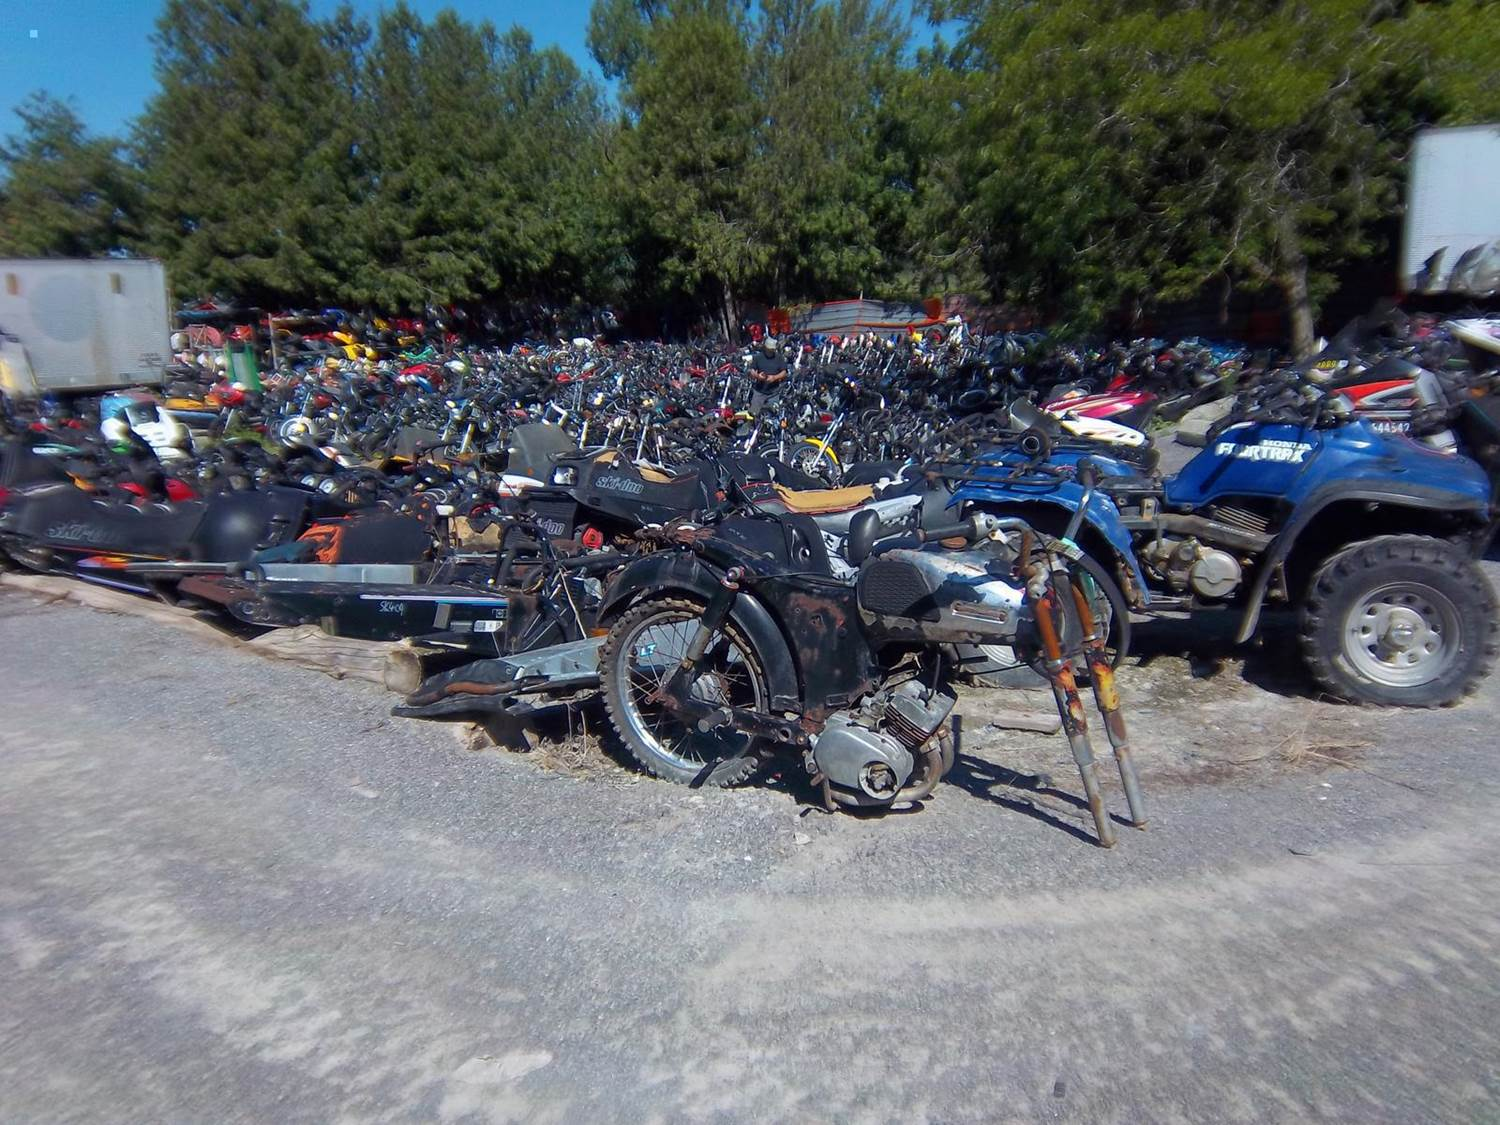 Peterborough Cycle Salvage has the Biggest Motorcycle, ATV and Snowmobile Wrecking Yard in Ontario.